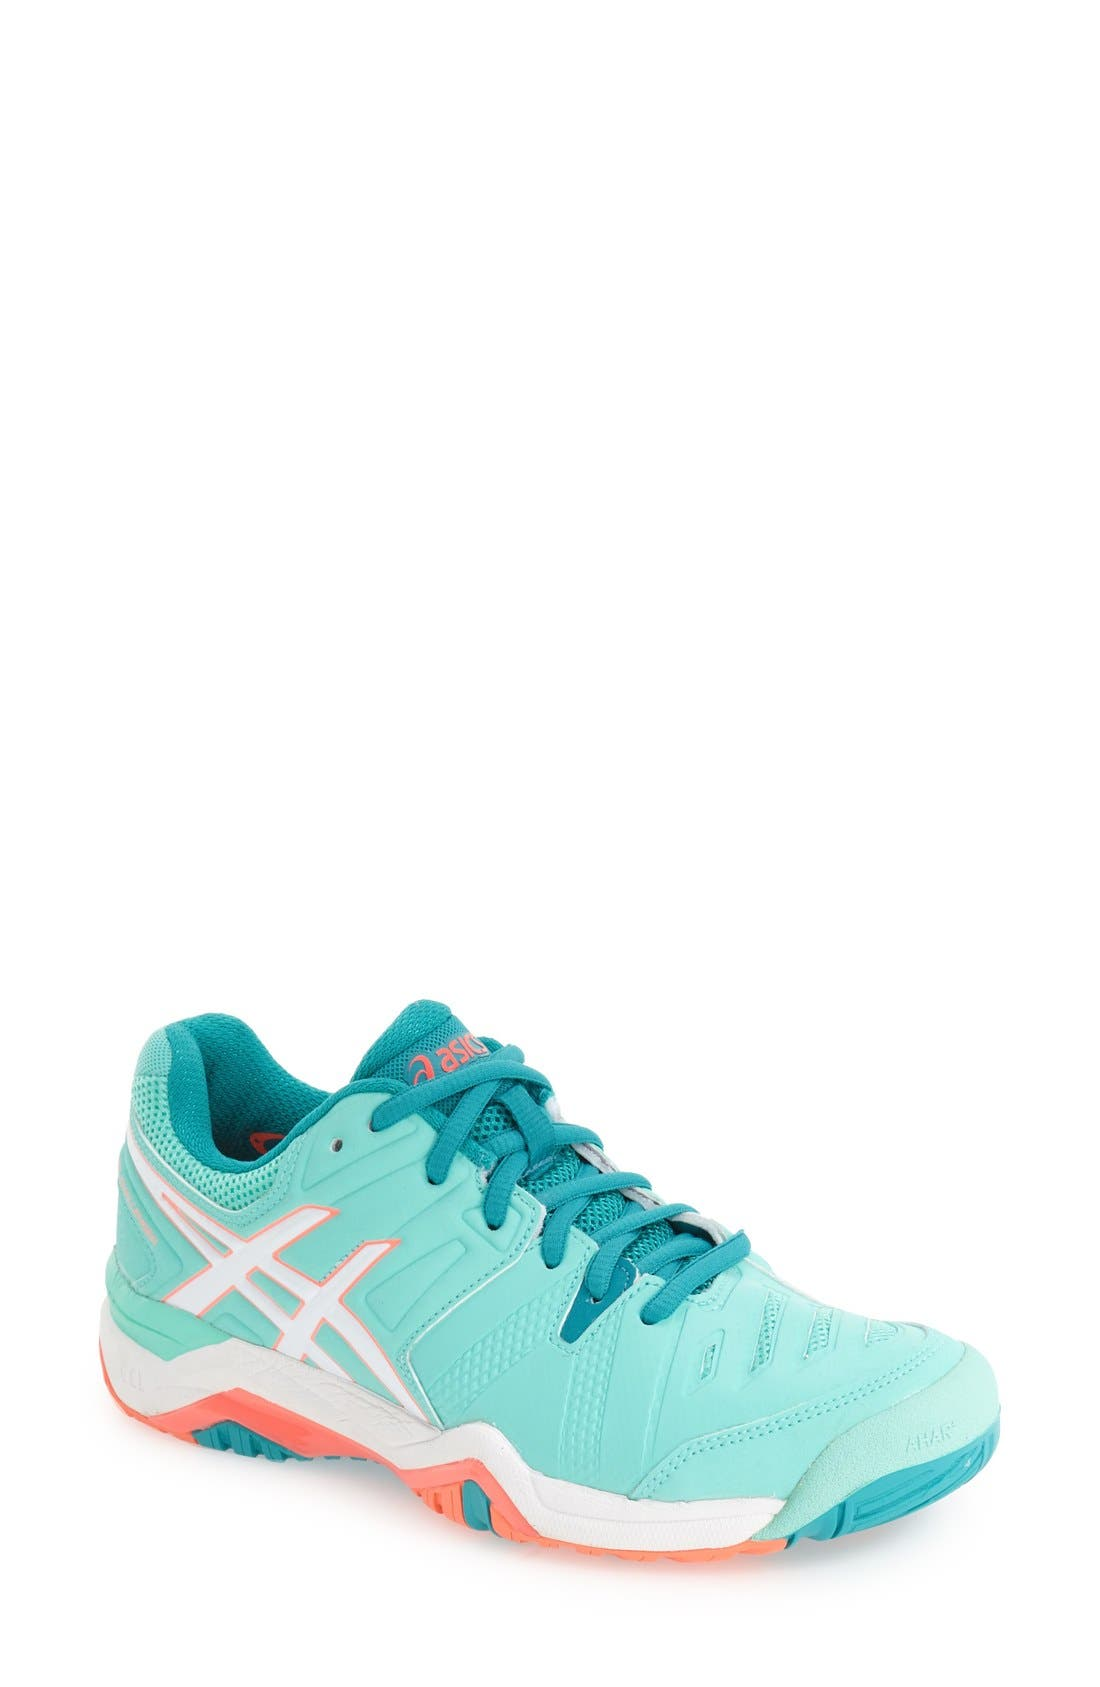 asics gel foundation 10 beige